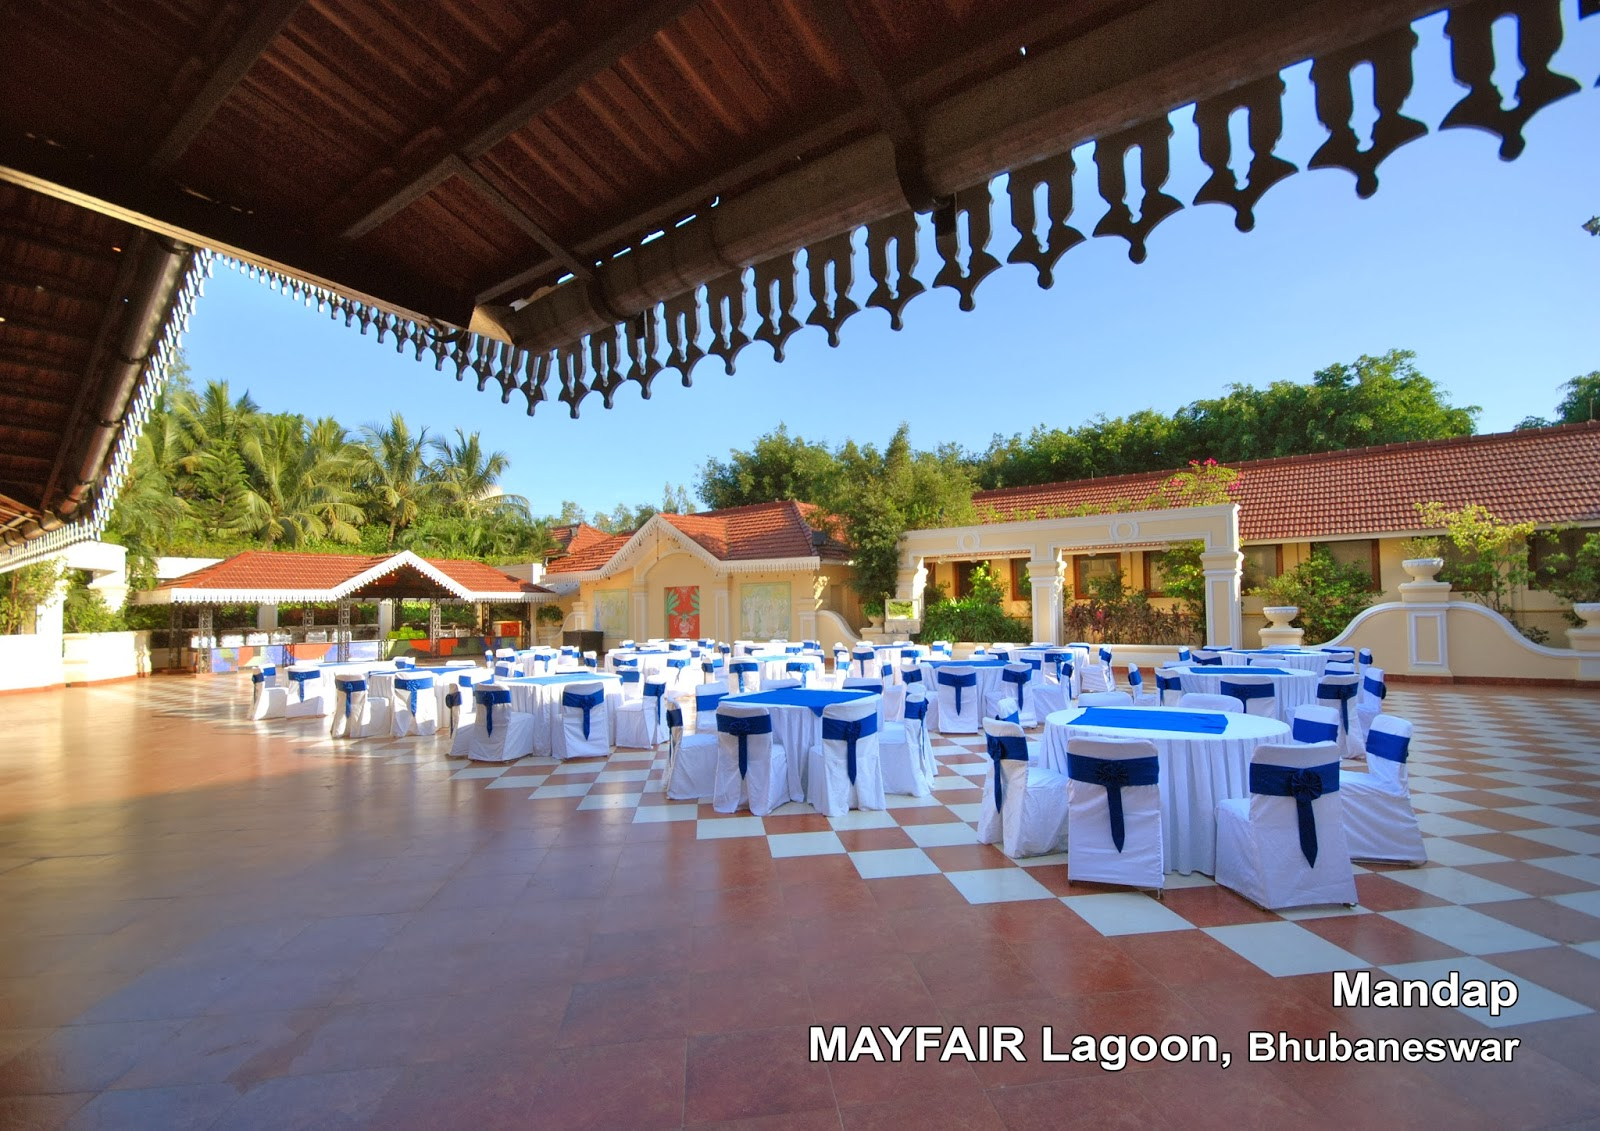 MAYFAIR Lagoon Mandap